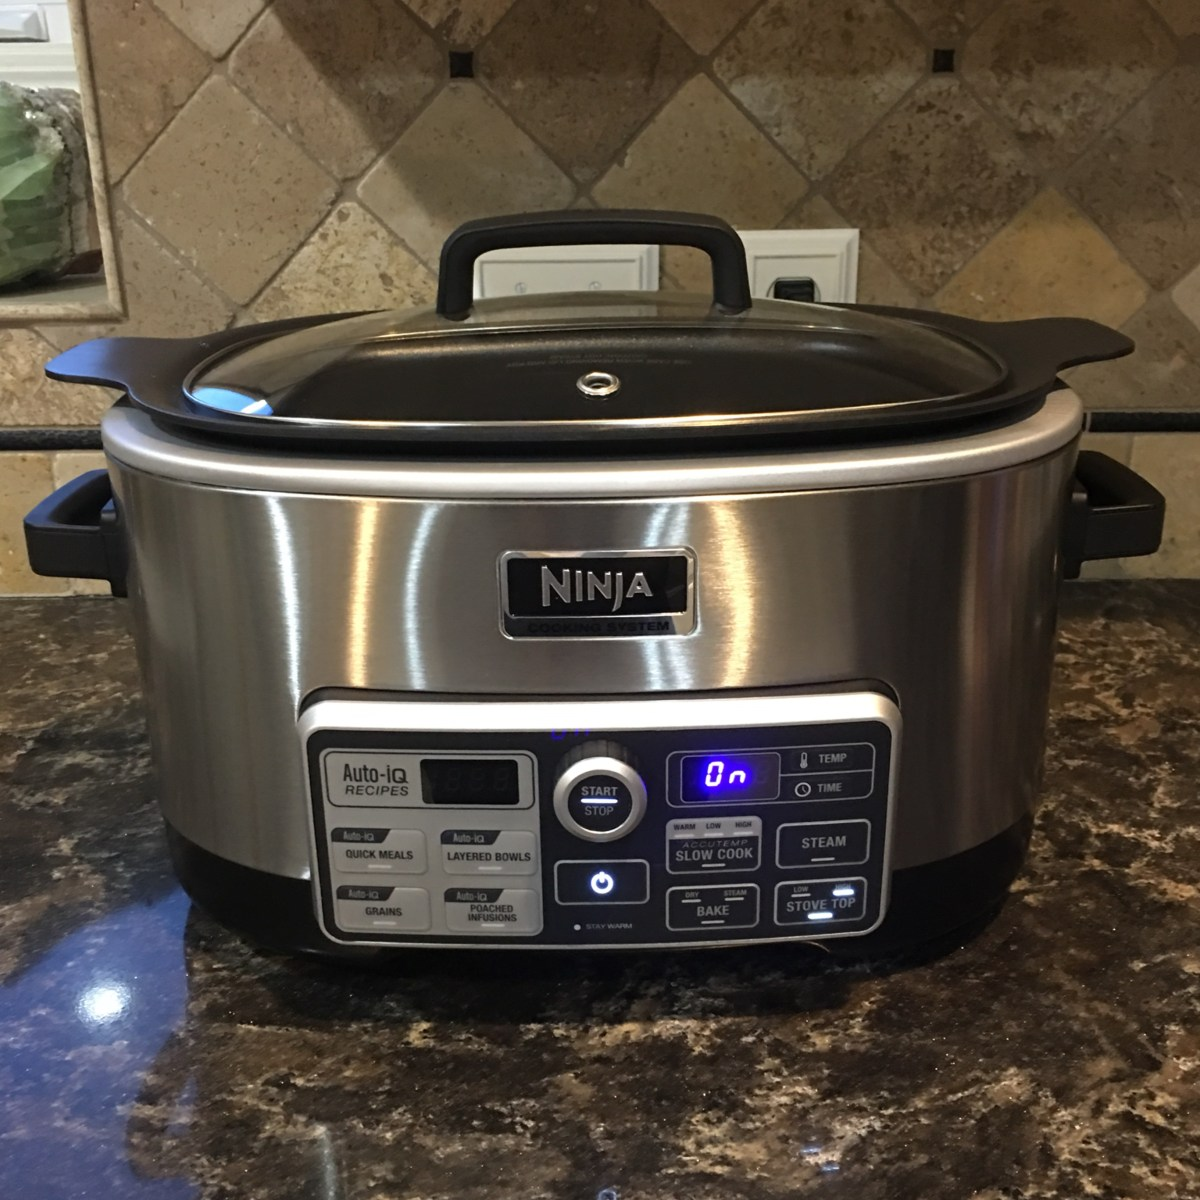 Perfect Eggs Every Time with Ninja Cooking System with Auto-iQ